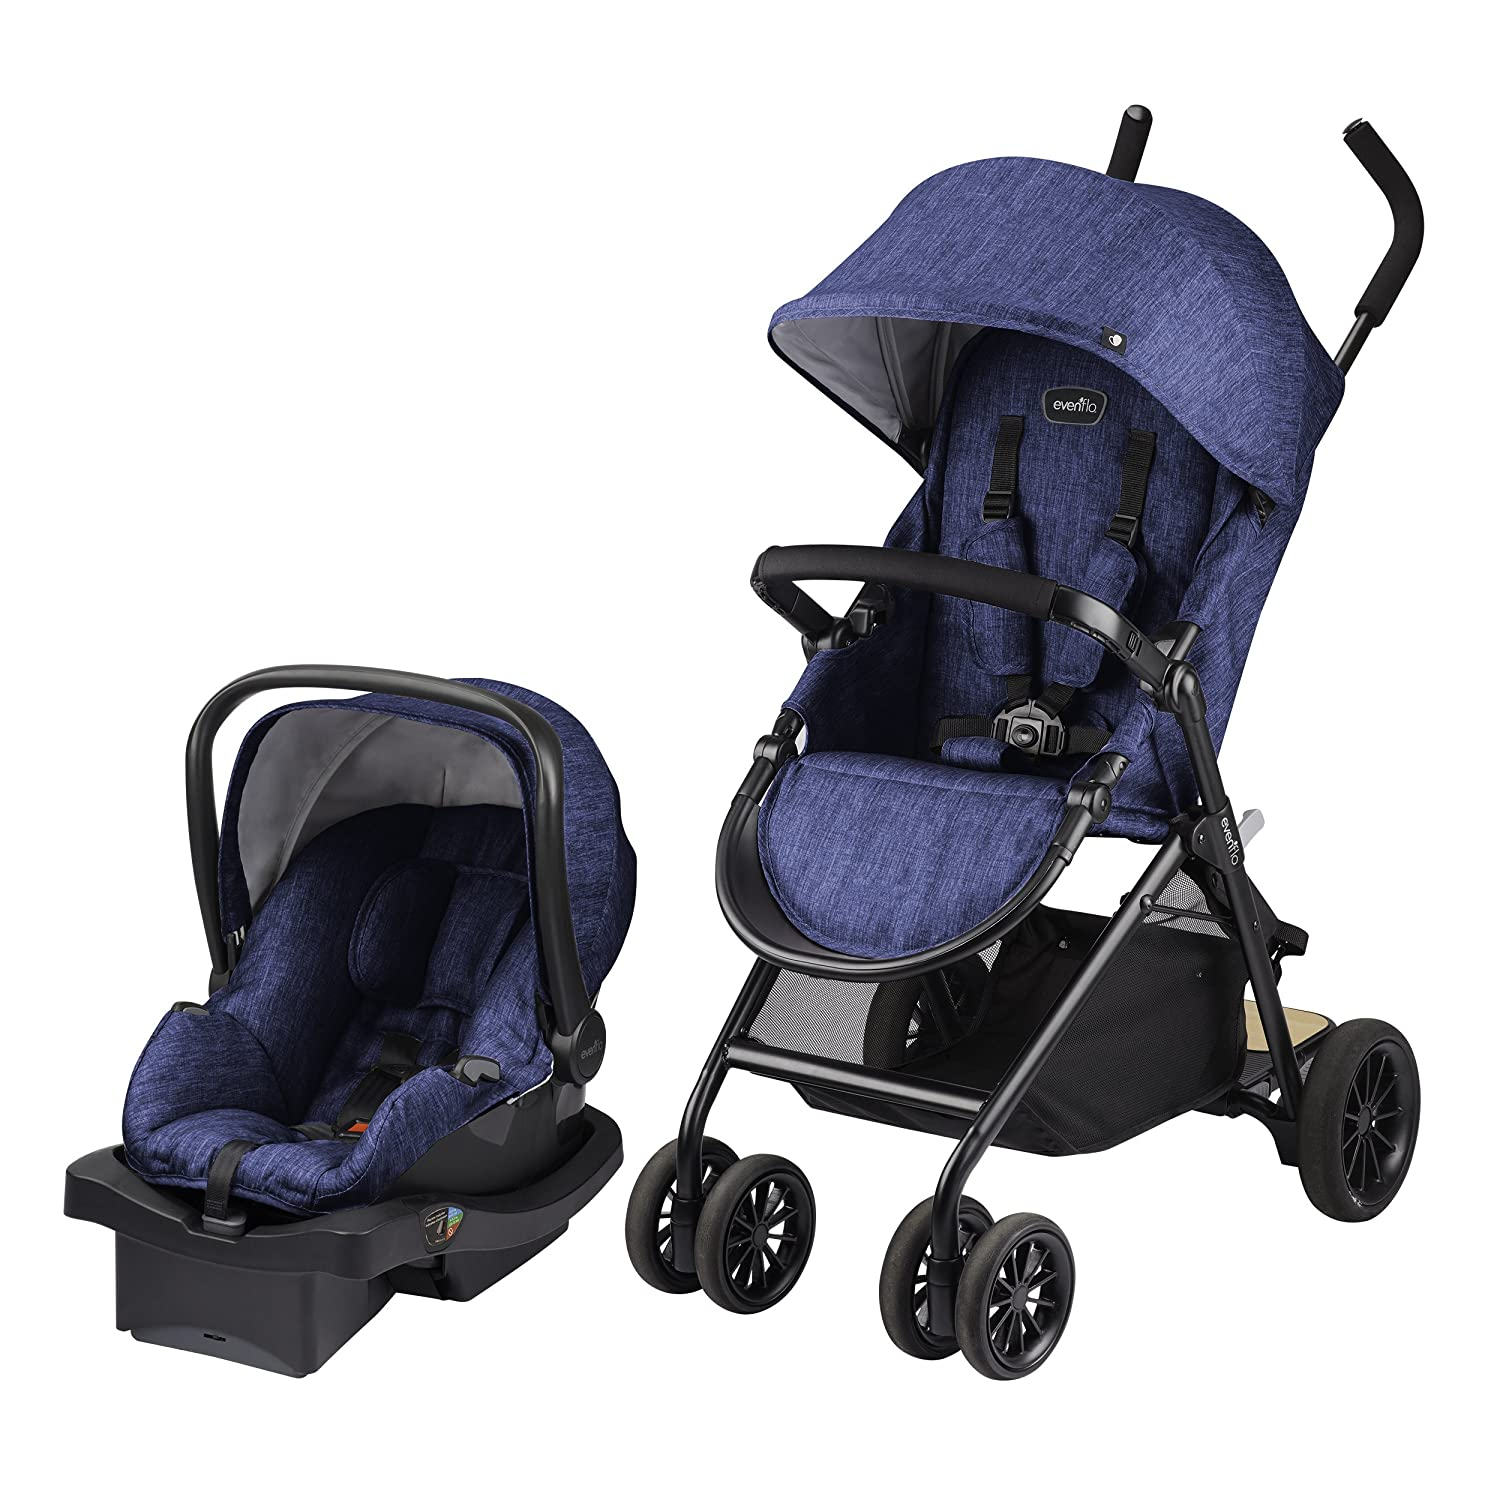 Evenflo Sibby Travel System with LiteMax, Black, Blue, One Size 56211977